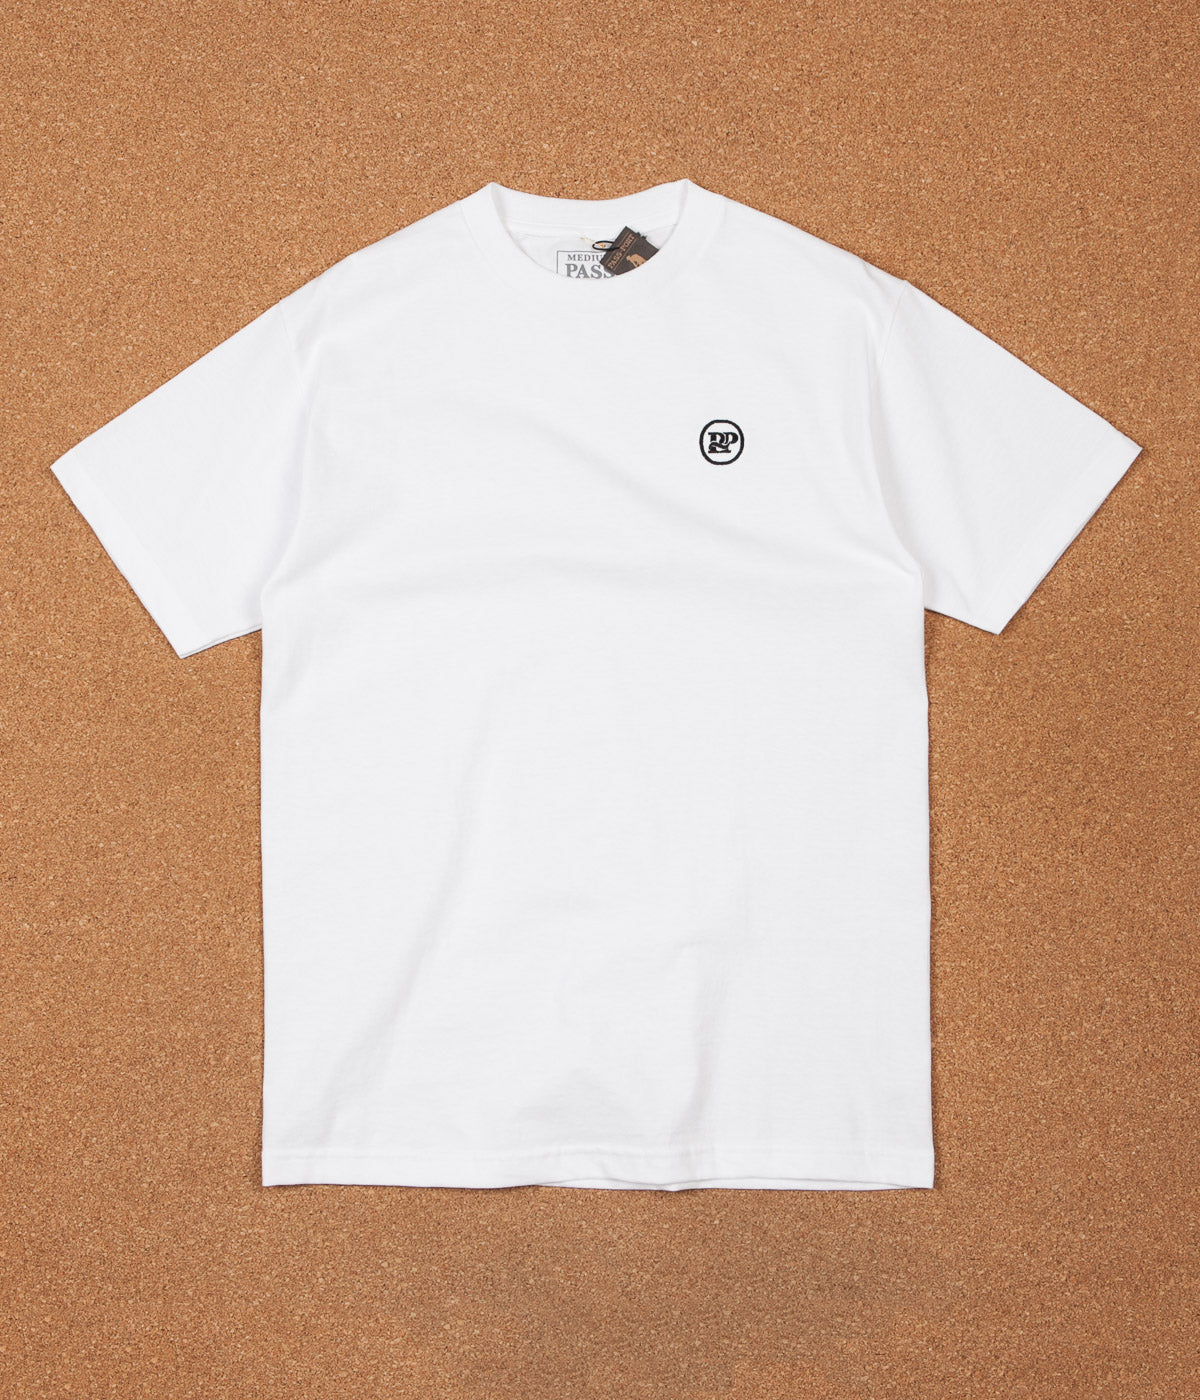 Pass Port P~P Works Embroidered T-Shirt - White